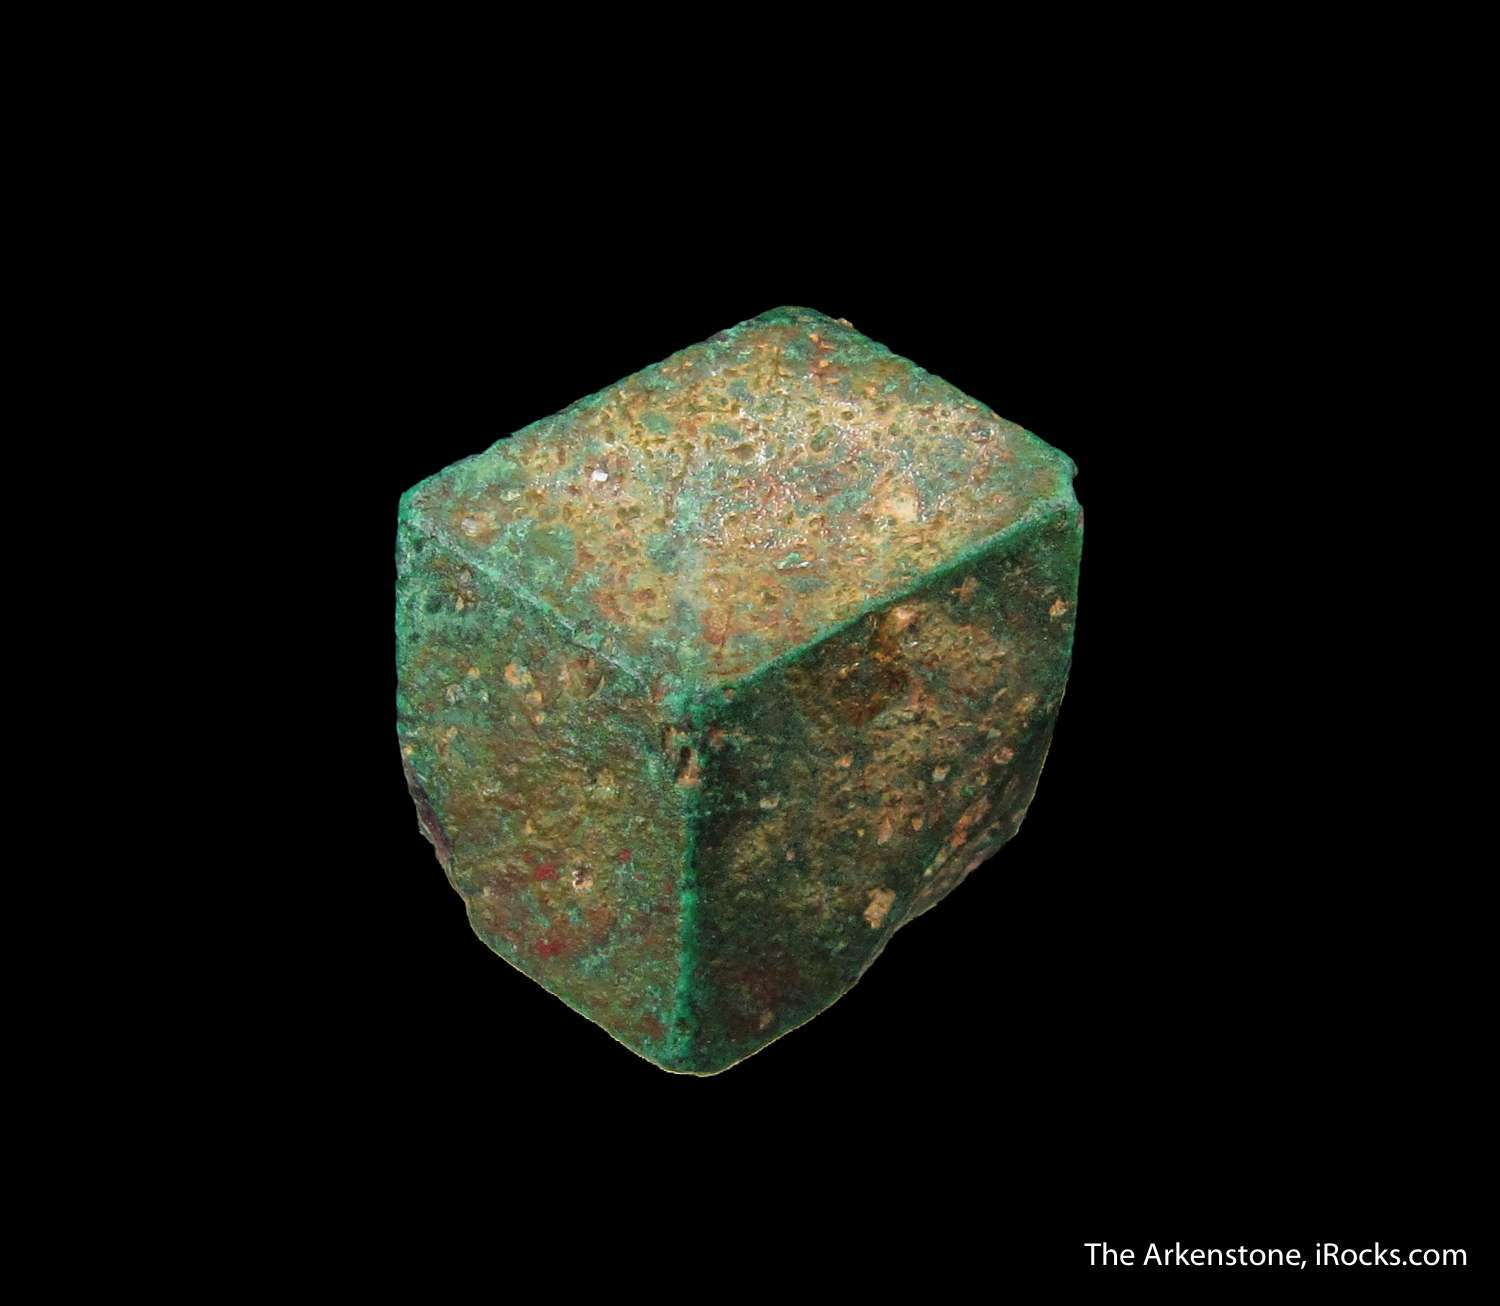 A single sharp highly modified Cuprite famous locality Chessy Chessy